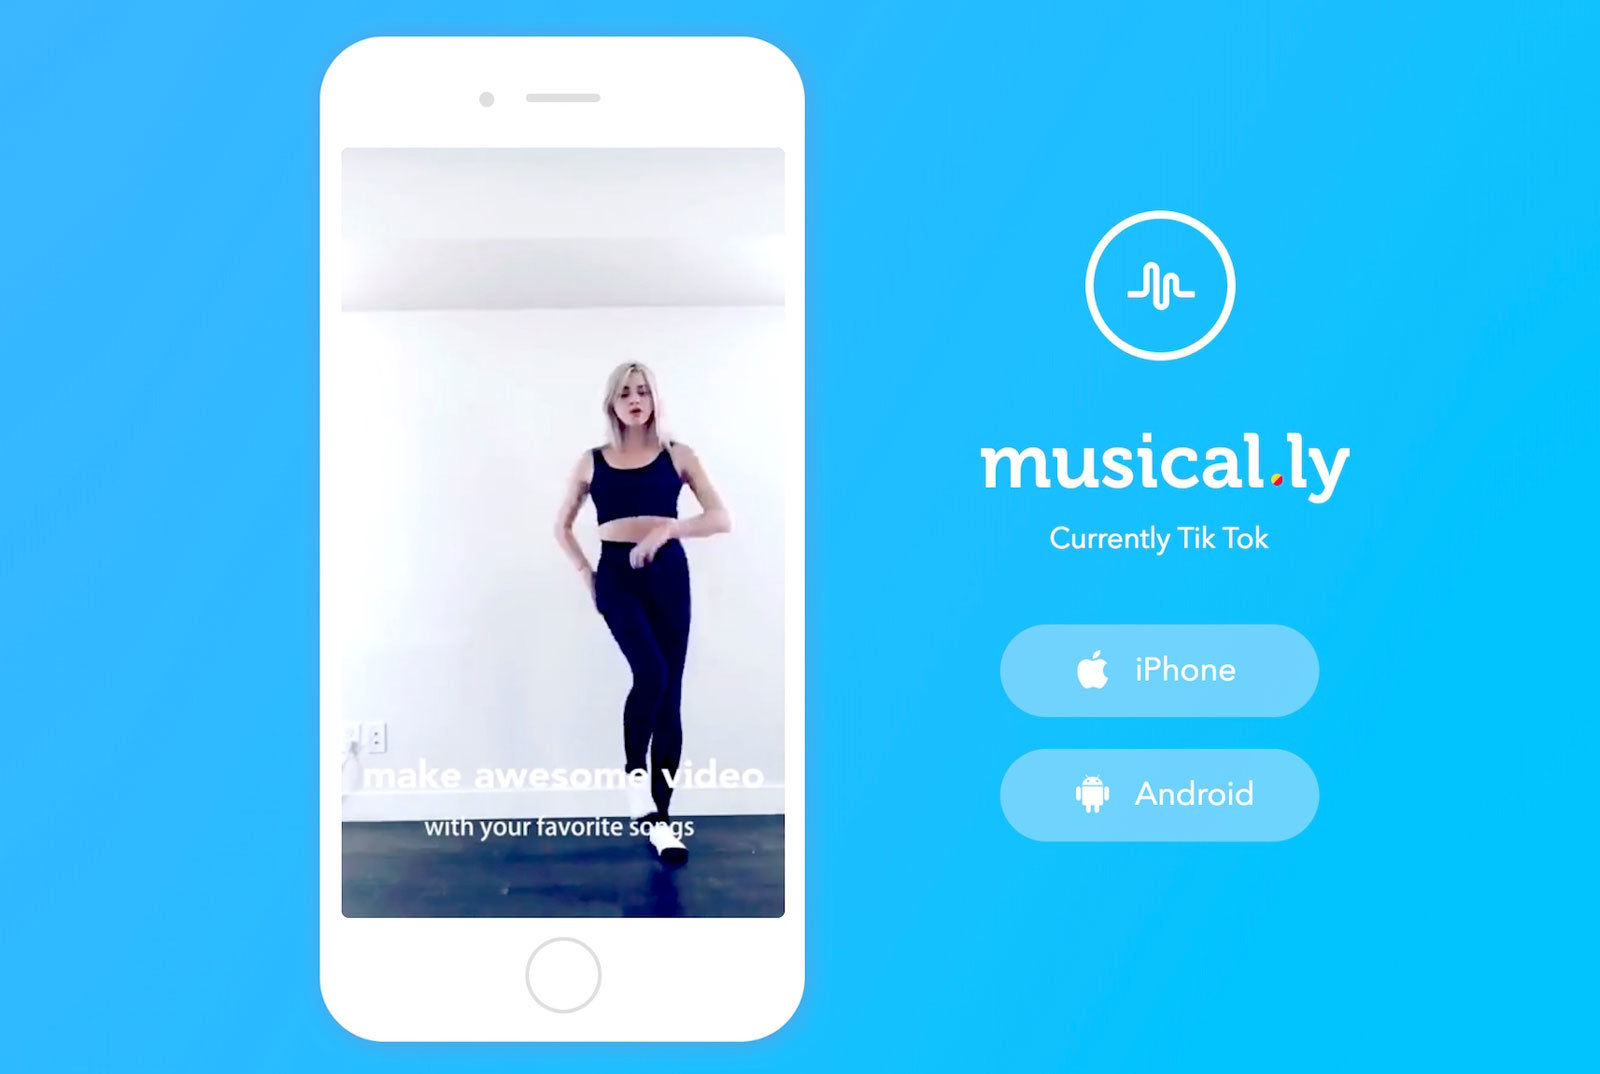 How To Fix Tik Tok Musical ly Network Issue Error In Your